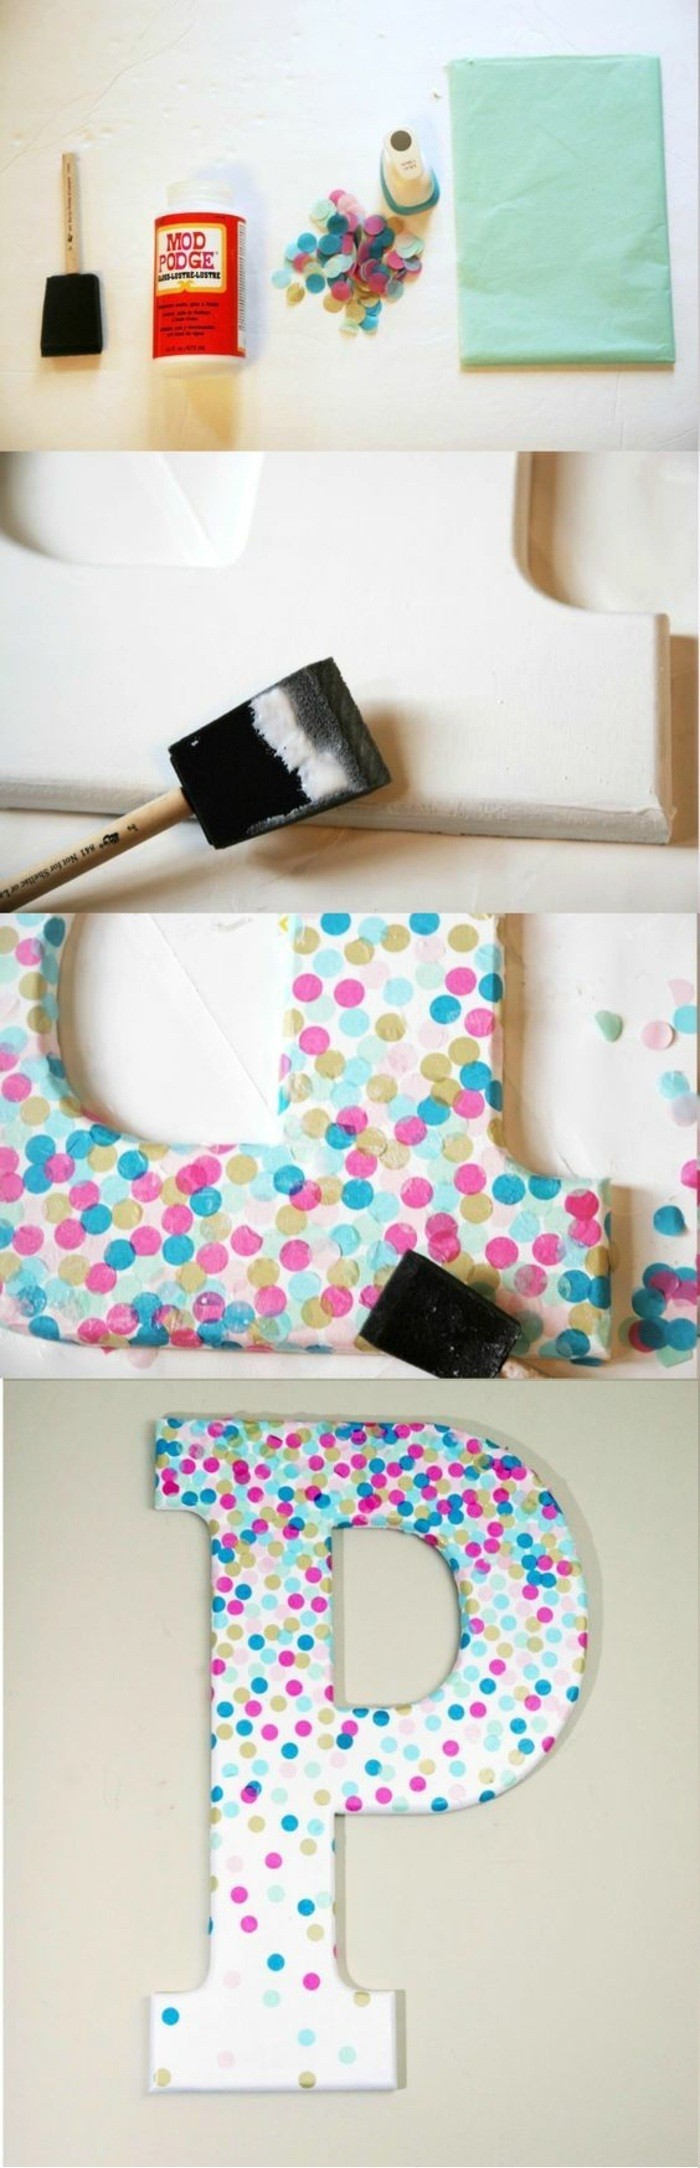 colourful confetti, glued to white carton, in the shape of the letter p, cool art designs, diy tutorial